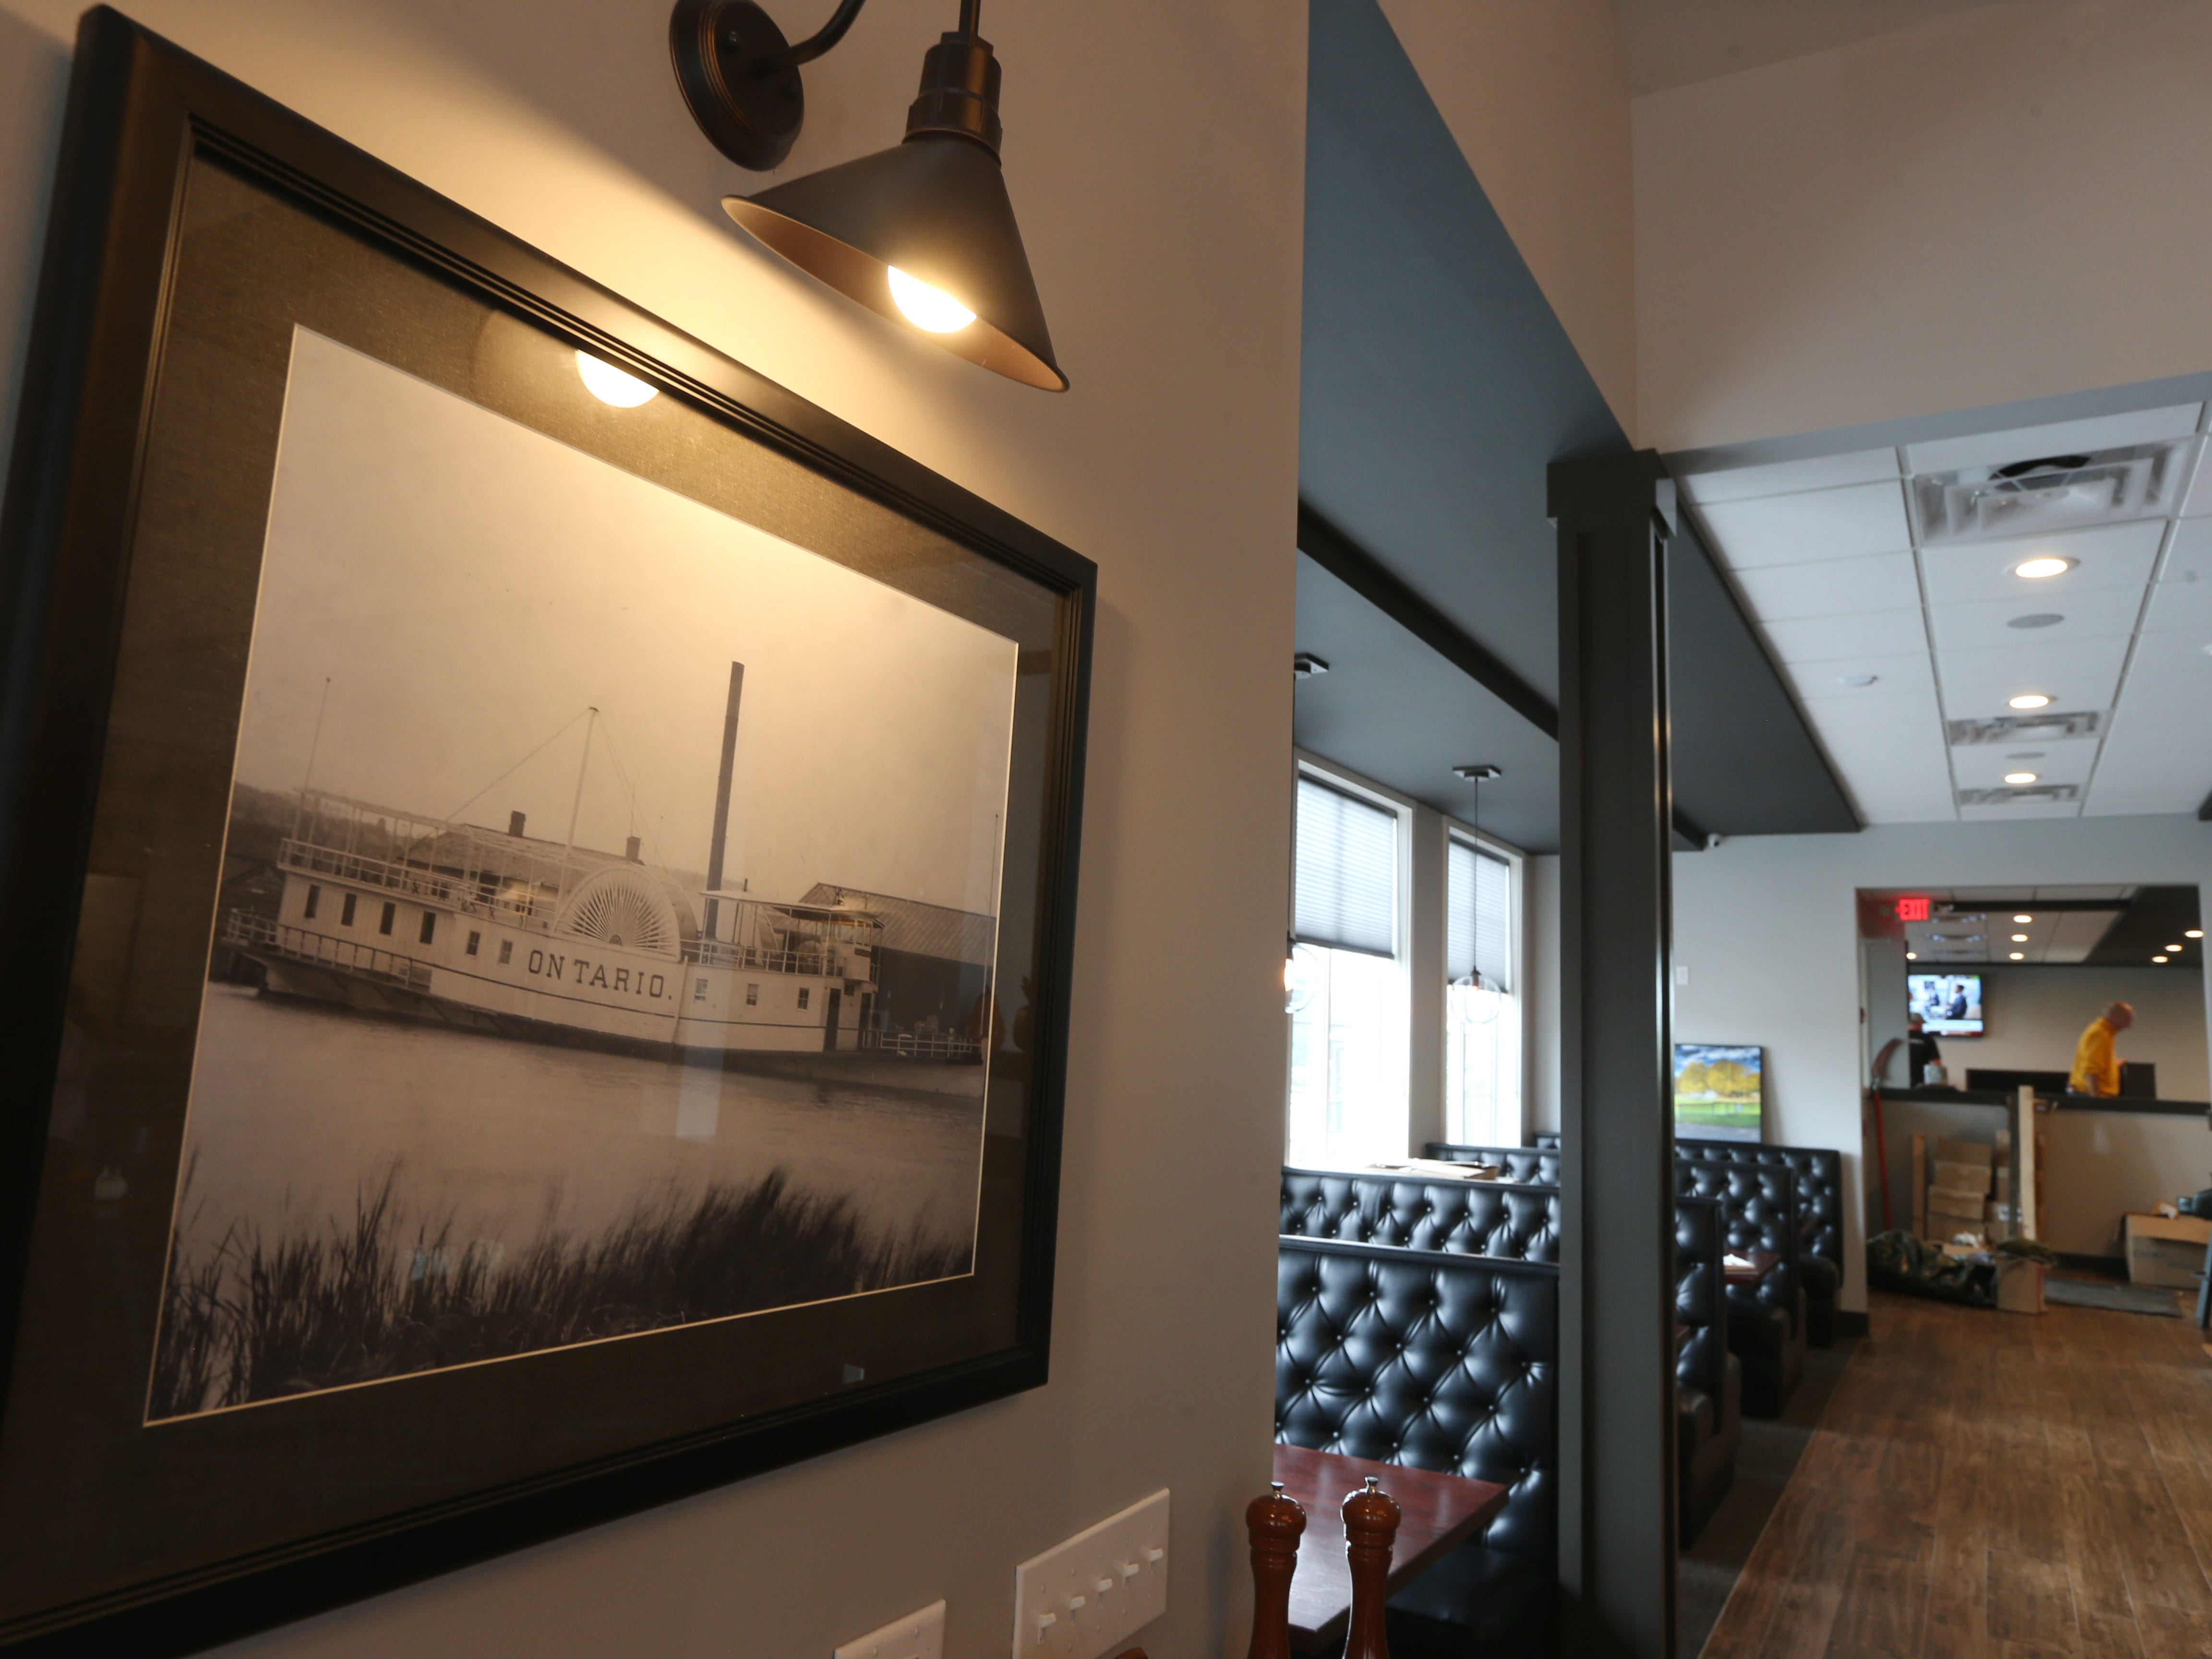 A photo of the steamboat Ontario hangs in the dining room at Nolan's.  The photo was one of the few items saved from the original Nolan's that was destroyed in a fire on July 13, 2017.